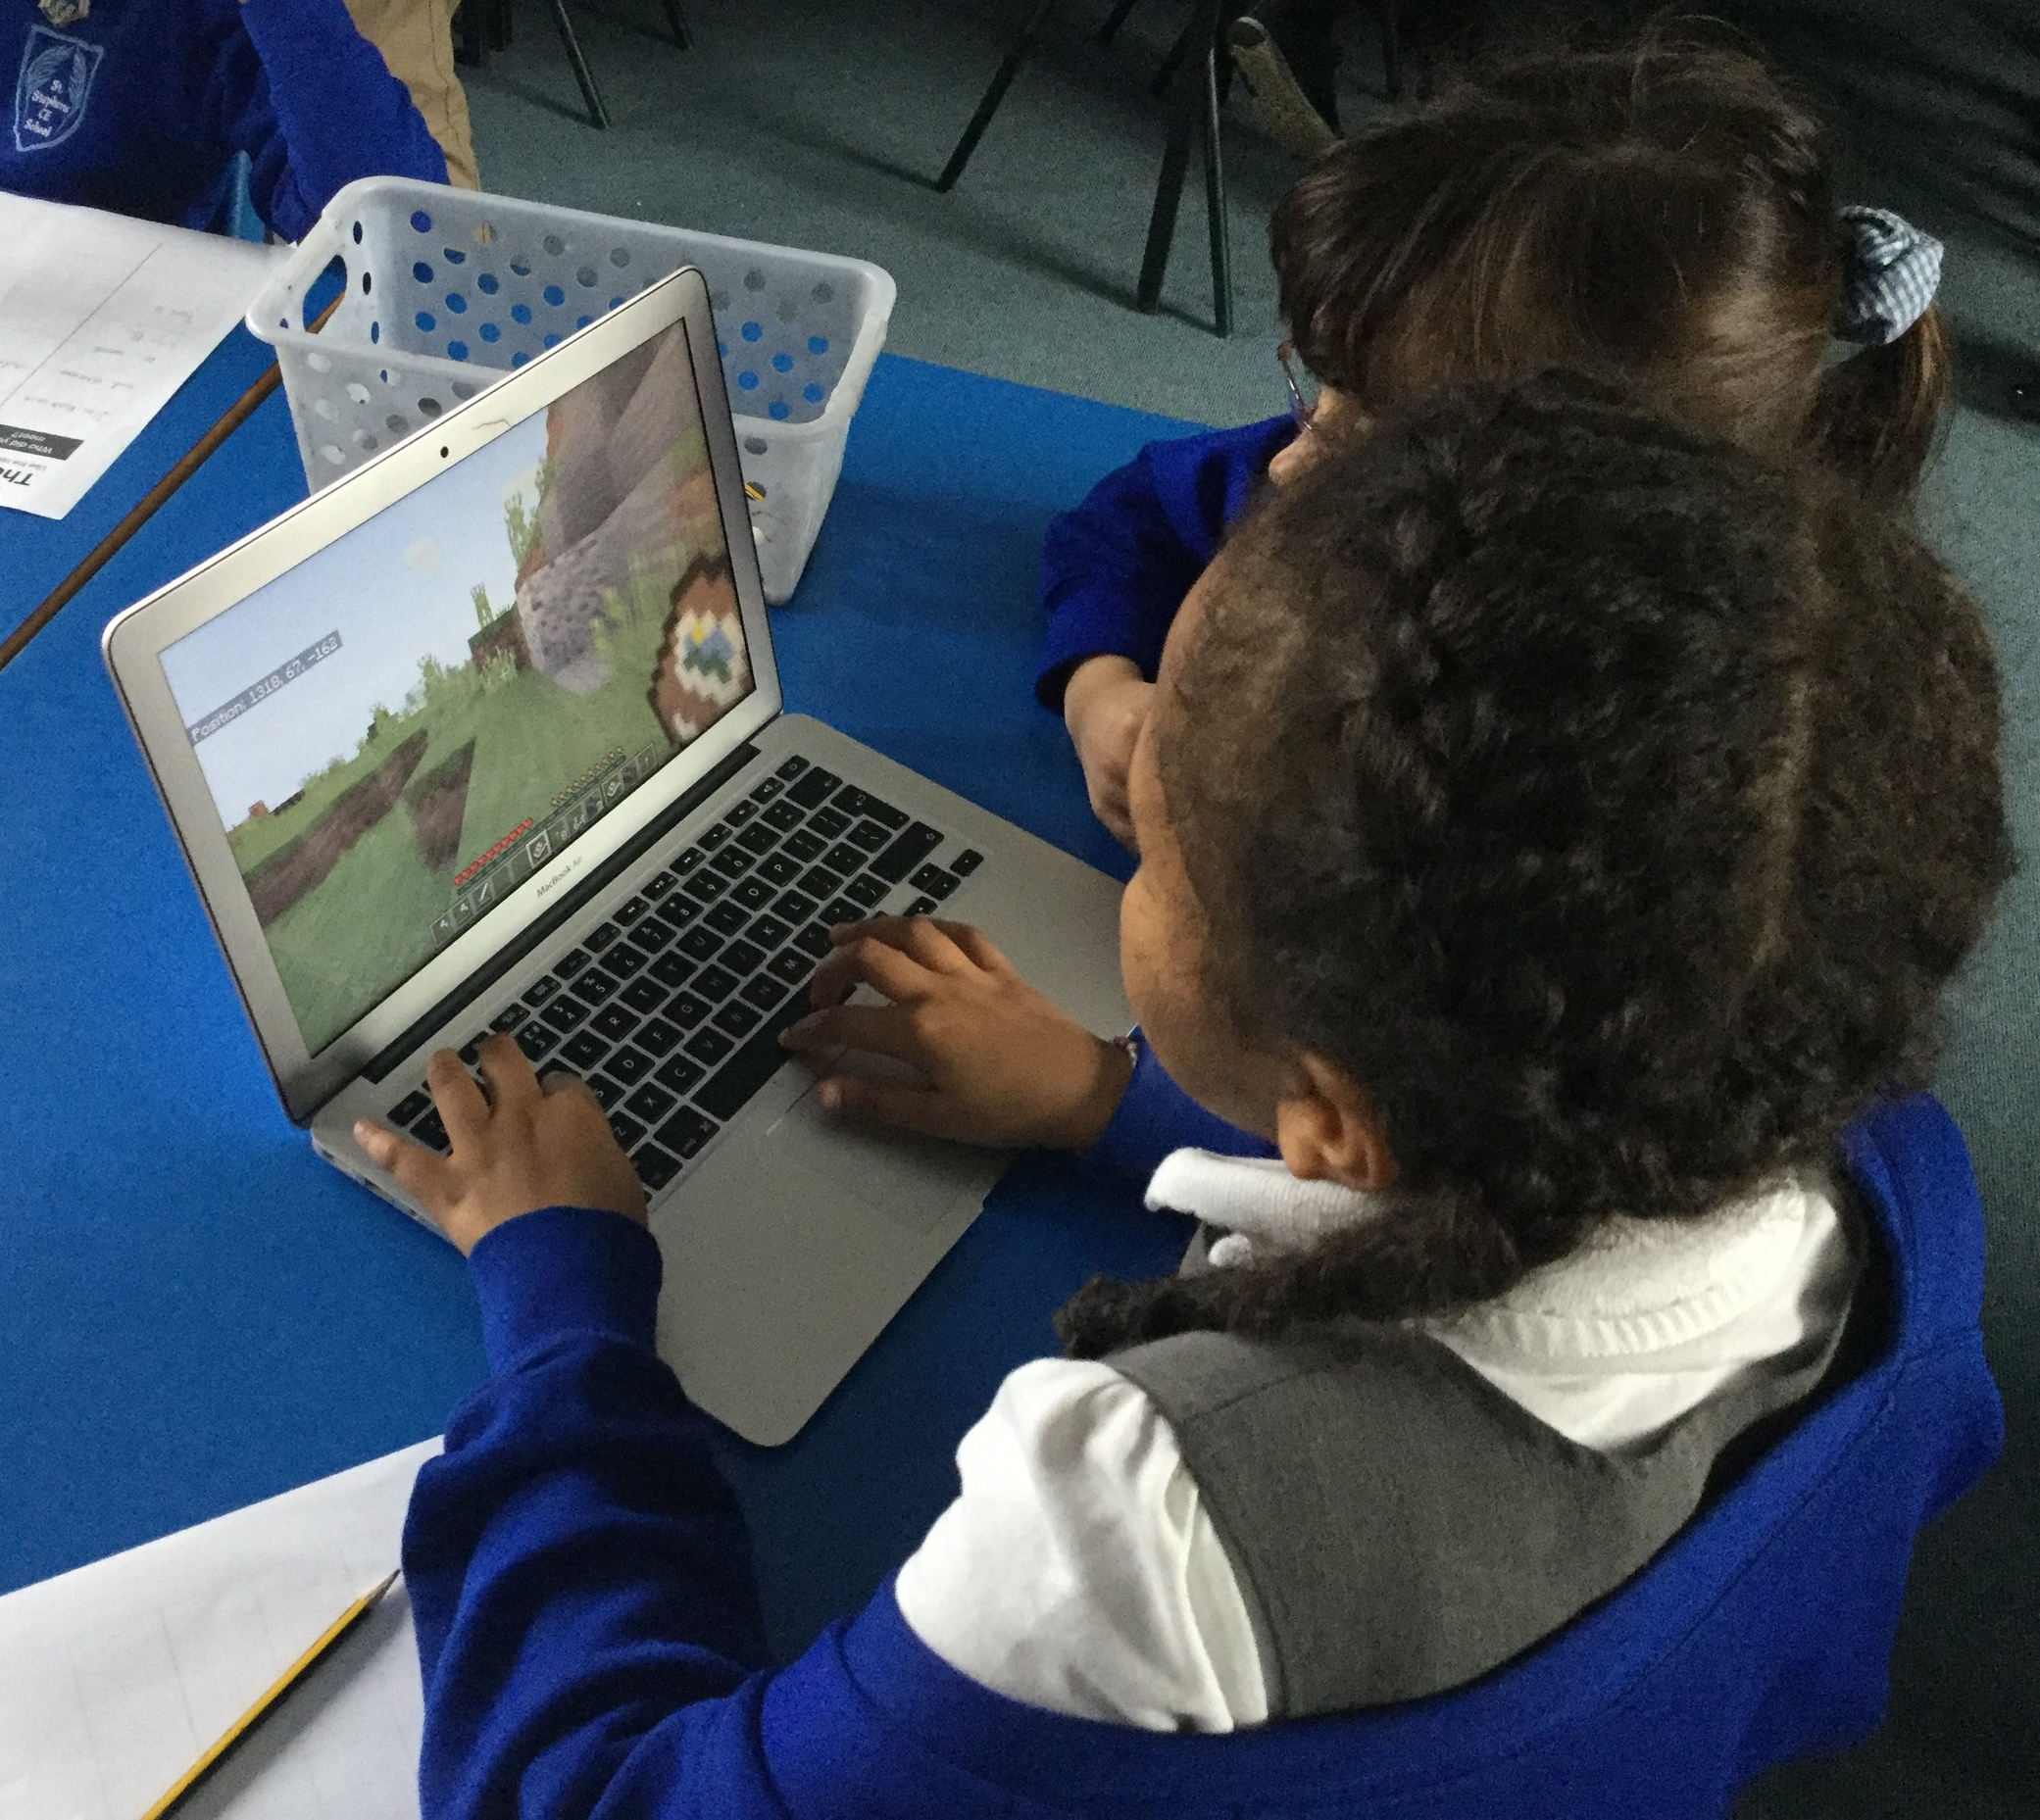 Children worked together to explore the world and investigate the exploits and whereabouts of the dragon.